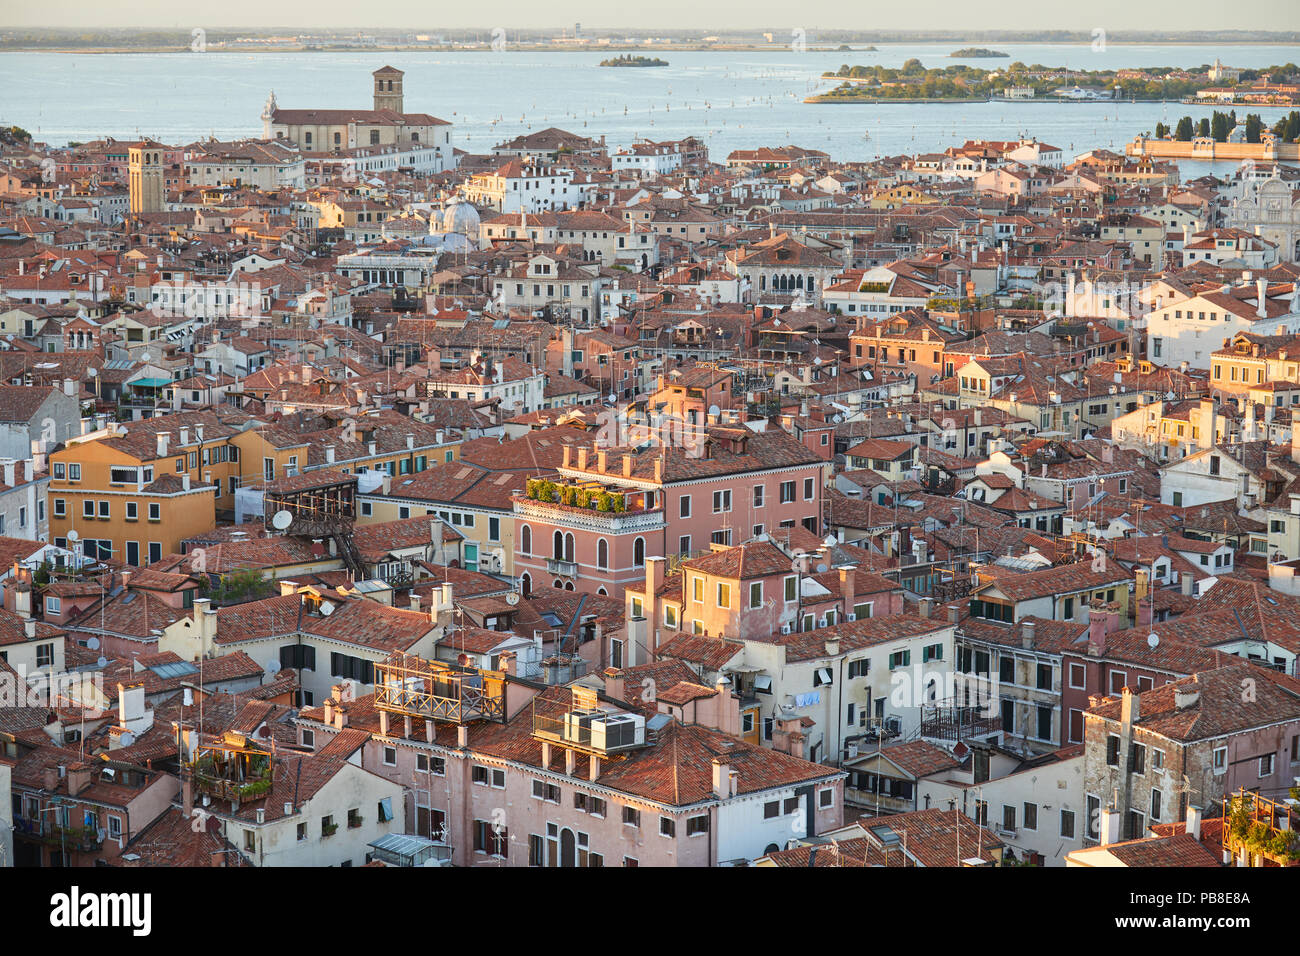 Elevated view of Venice with roofs buildings and sea before sunset, Italy Stock Photo